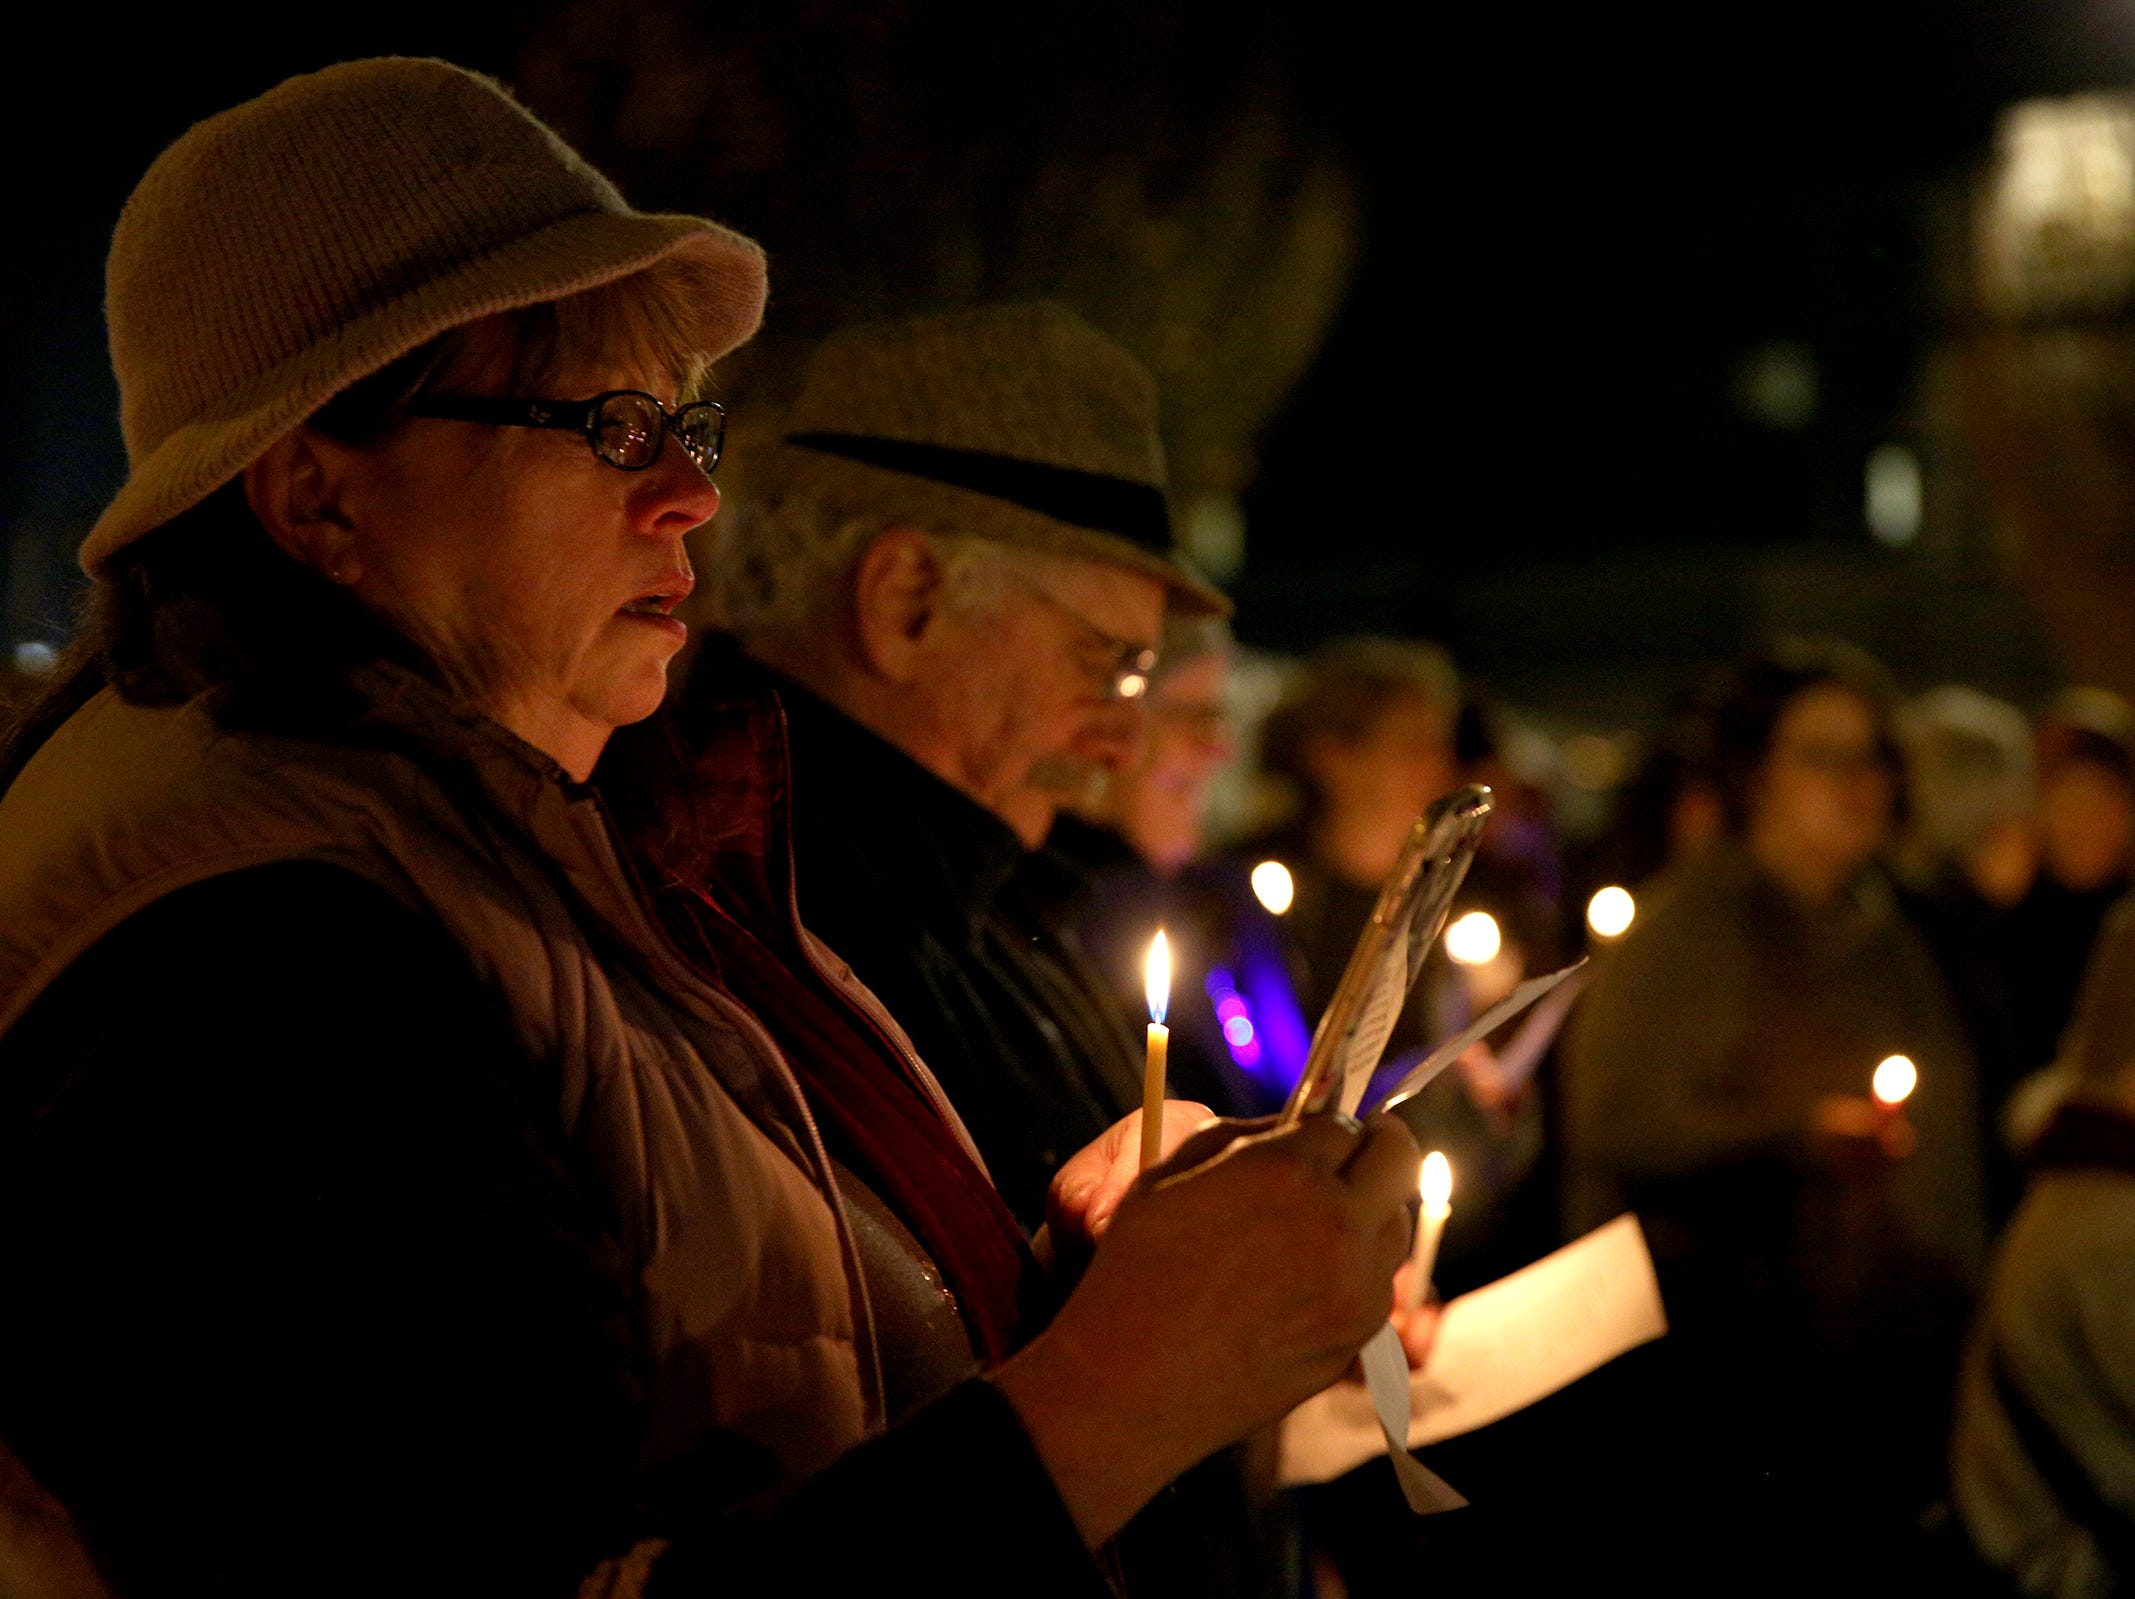 Attendees of a menorah lighting, hosted by the Chabad Center for Jewish Life, sing songs on the first day of Hanukkah at Mirror Park in downtown Salem on Sunday, Dec. 2, 2018. The candles were lit to show solidarity with the Jewish community in Pittsburgh.